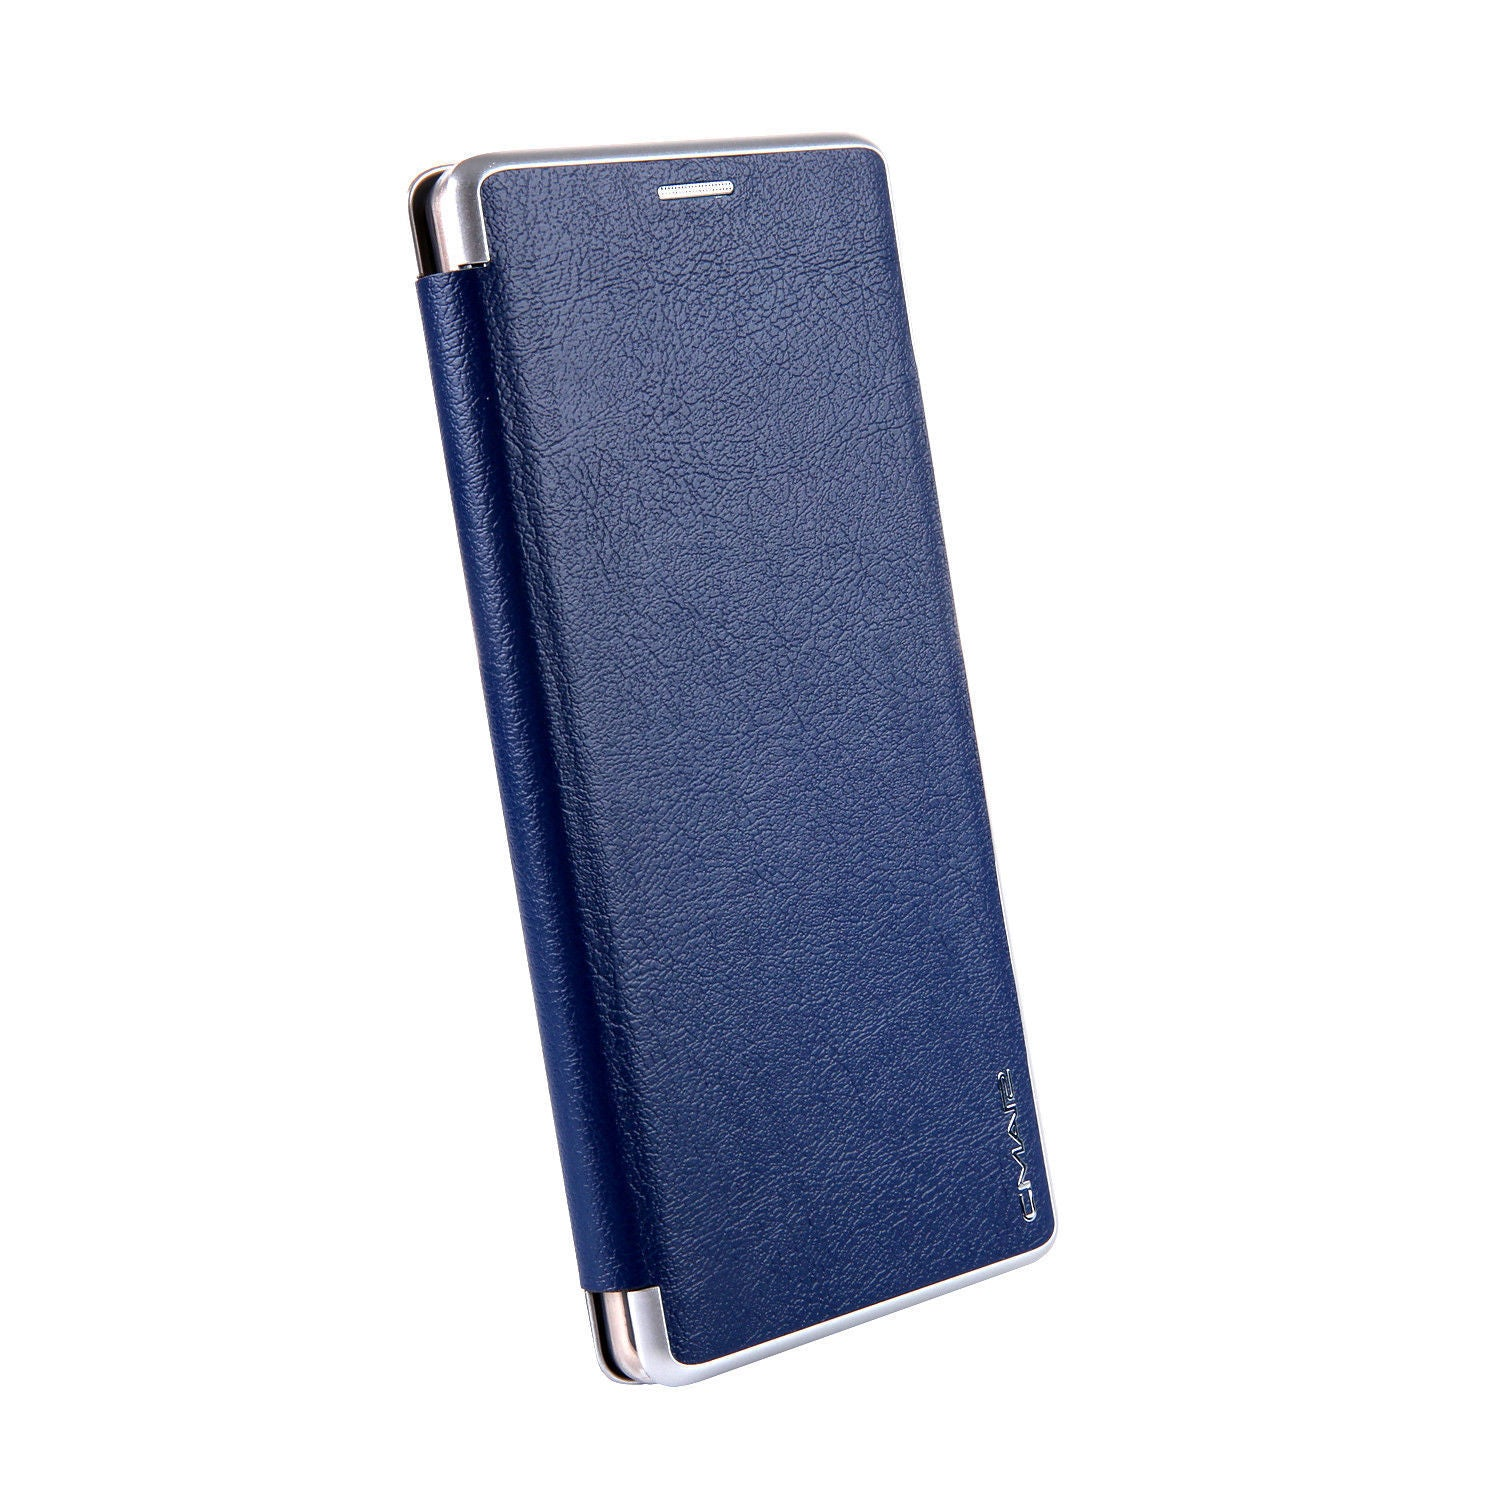 Samsung Galaxy S10 Flip Leather Wallet Card Magnetic Case Cover-Blue